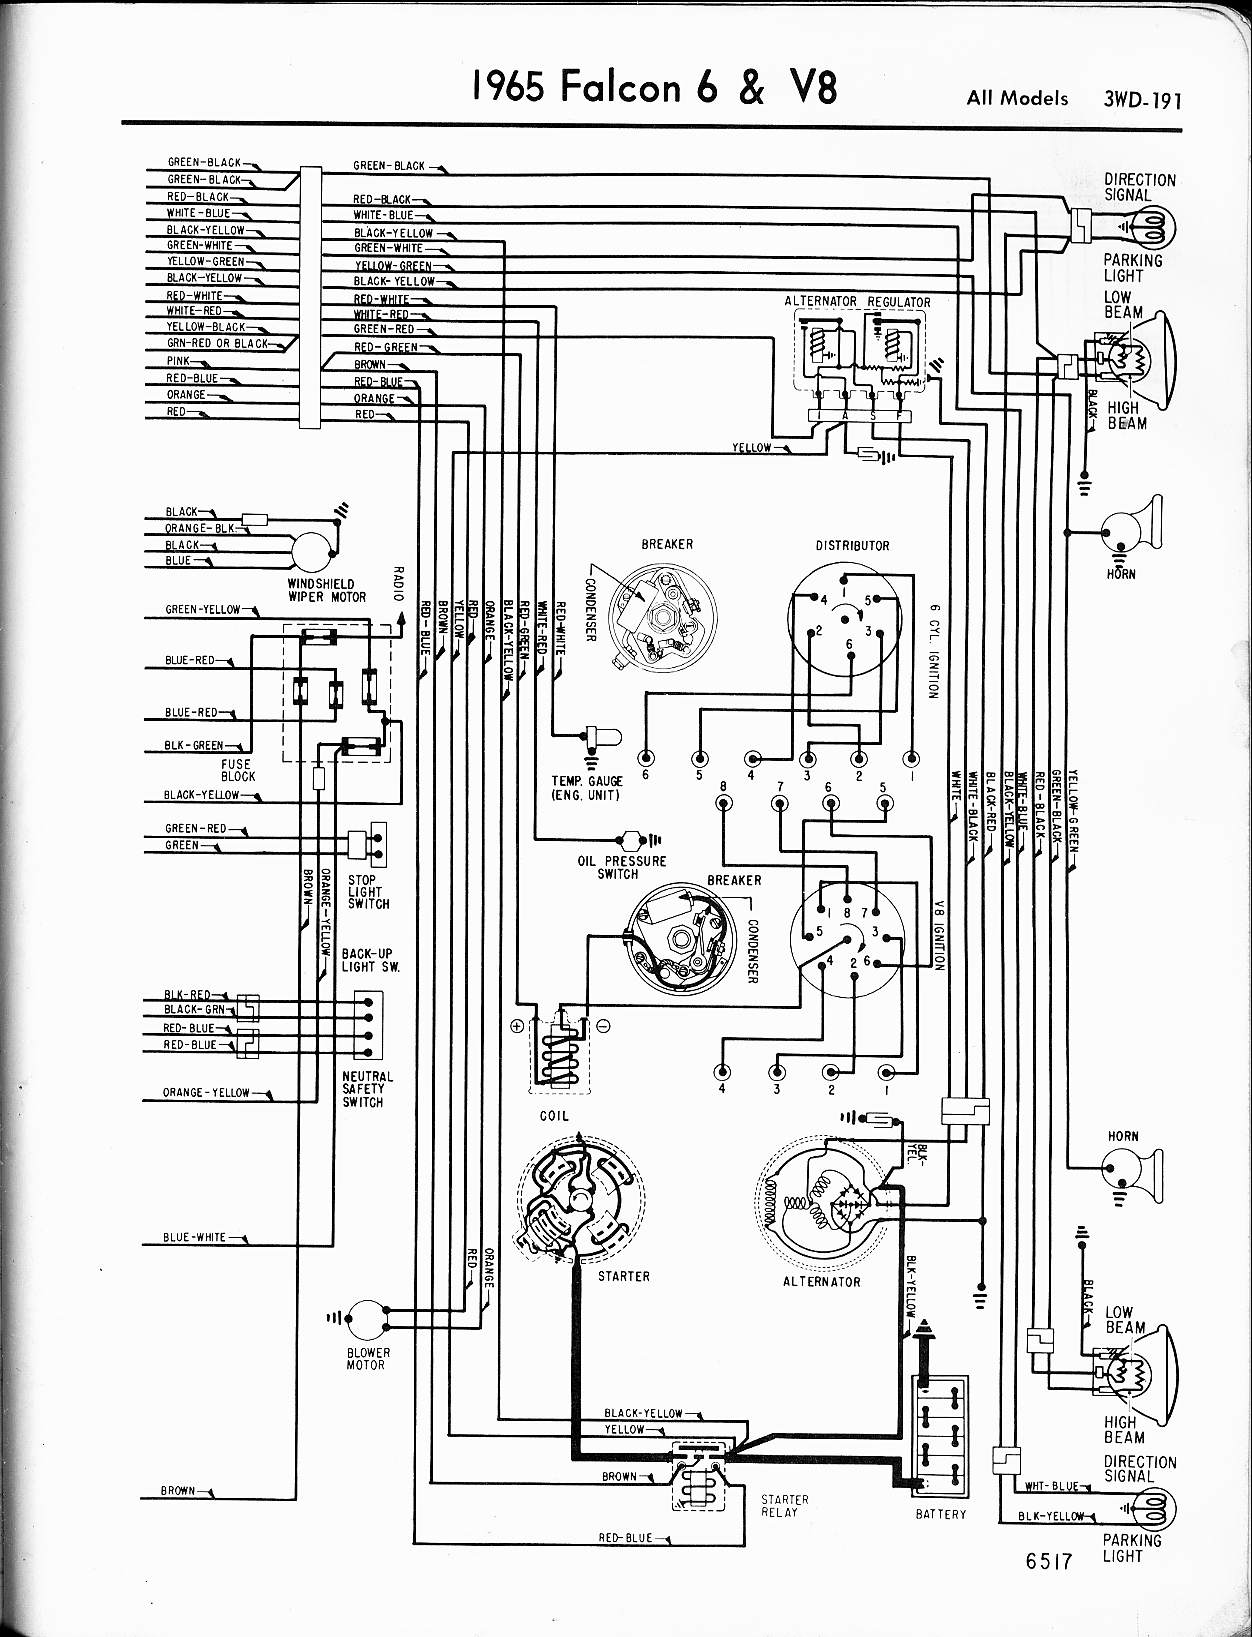 57 65 Ford Wiring Diagrams 1968 Mustang Backup Light Diagram 1965 6 V8 Falcon Right